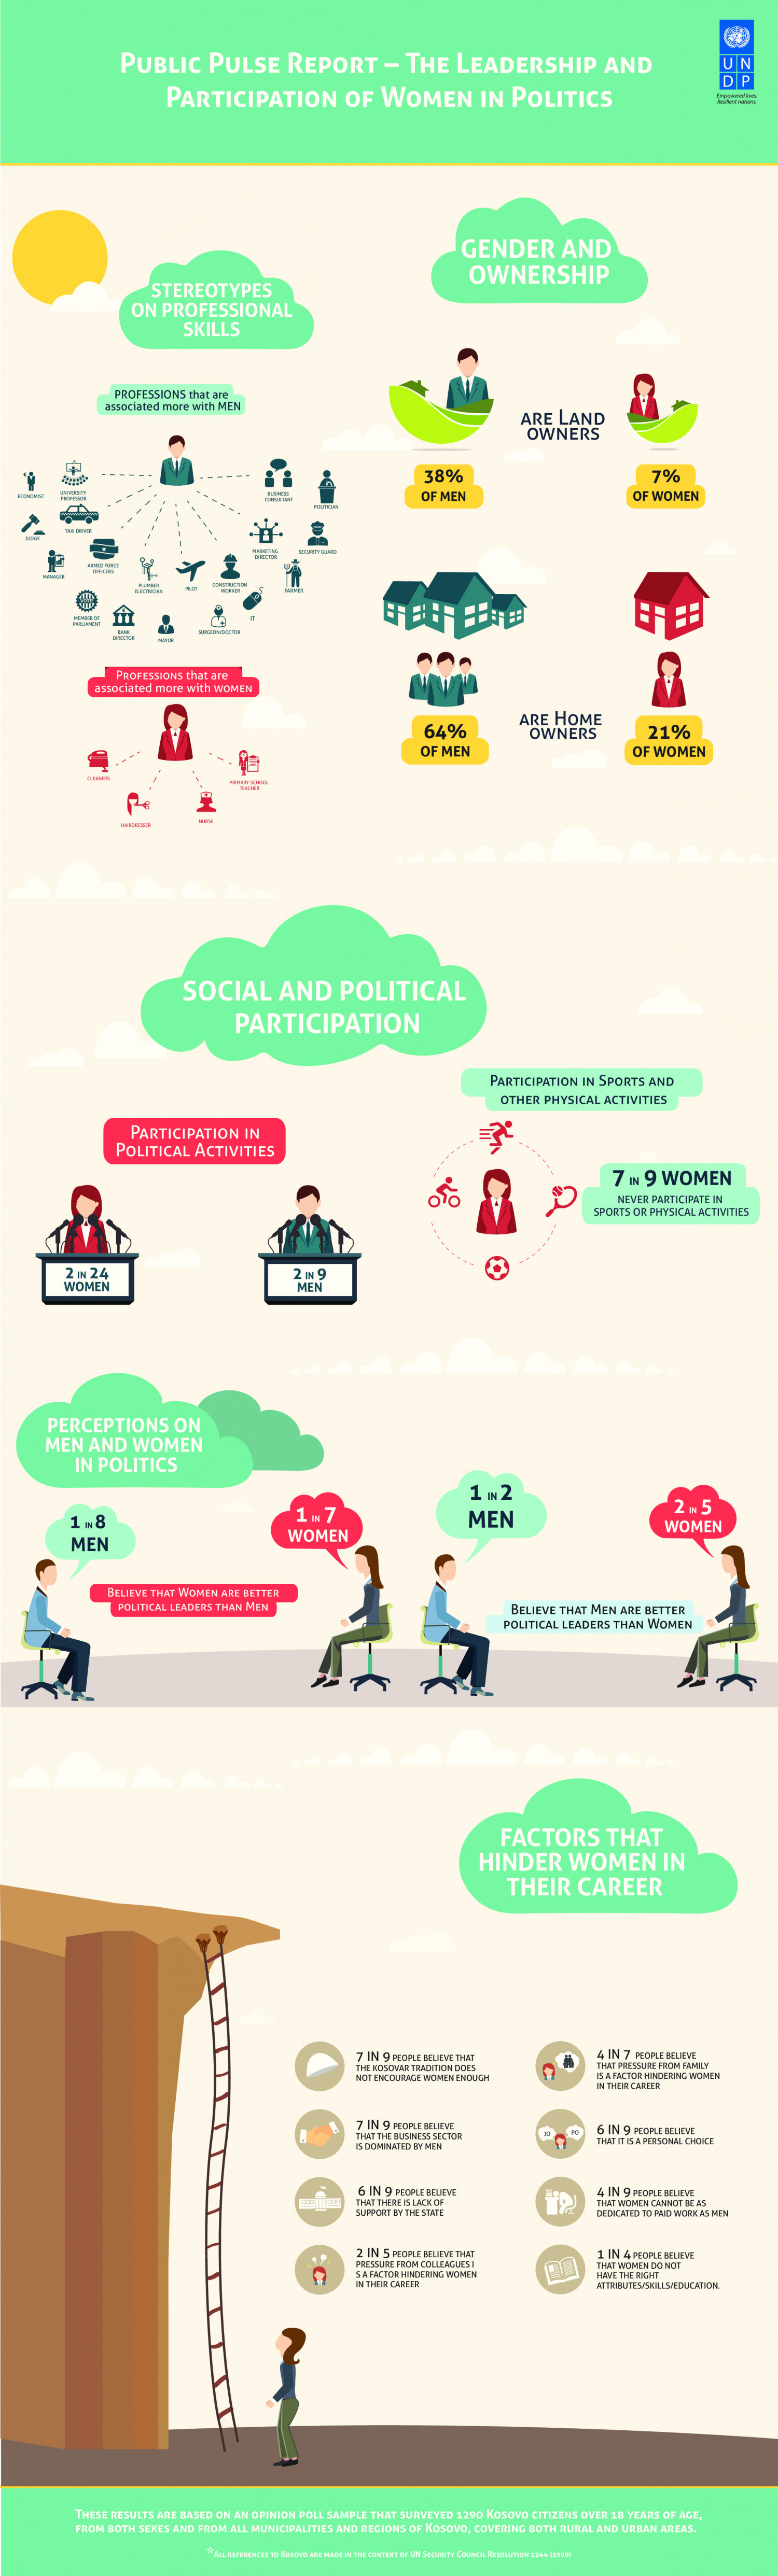 Public pulse on leadership and participation of women in politics Infographic